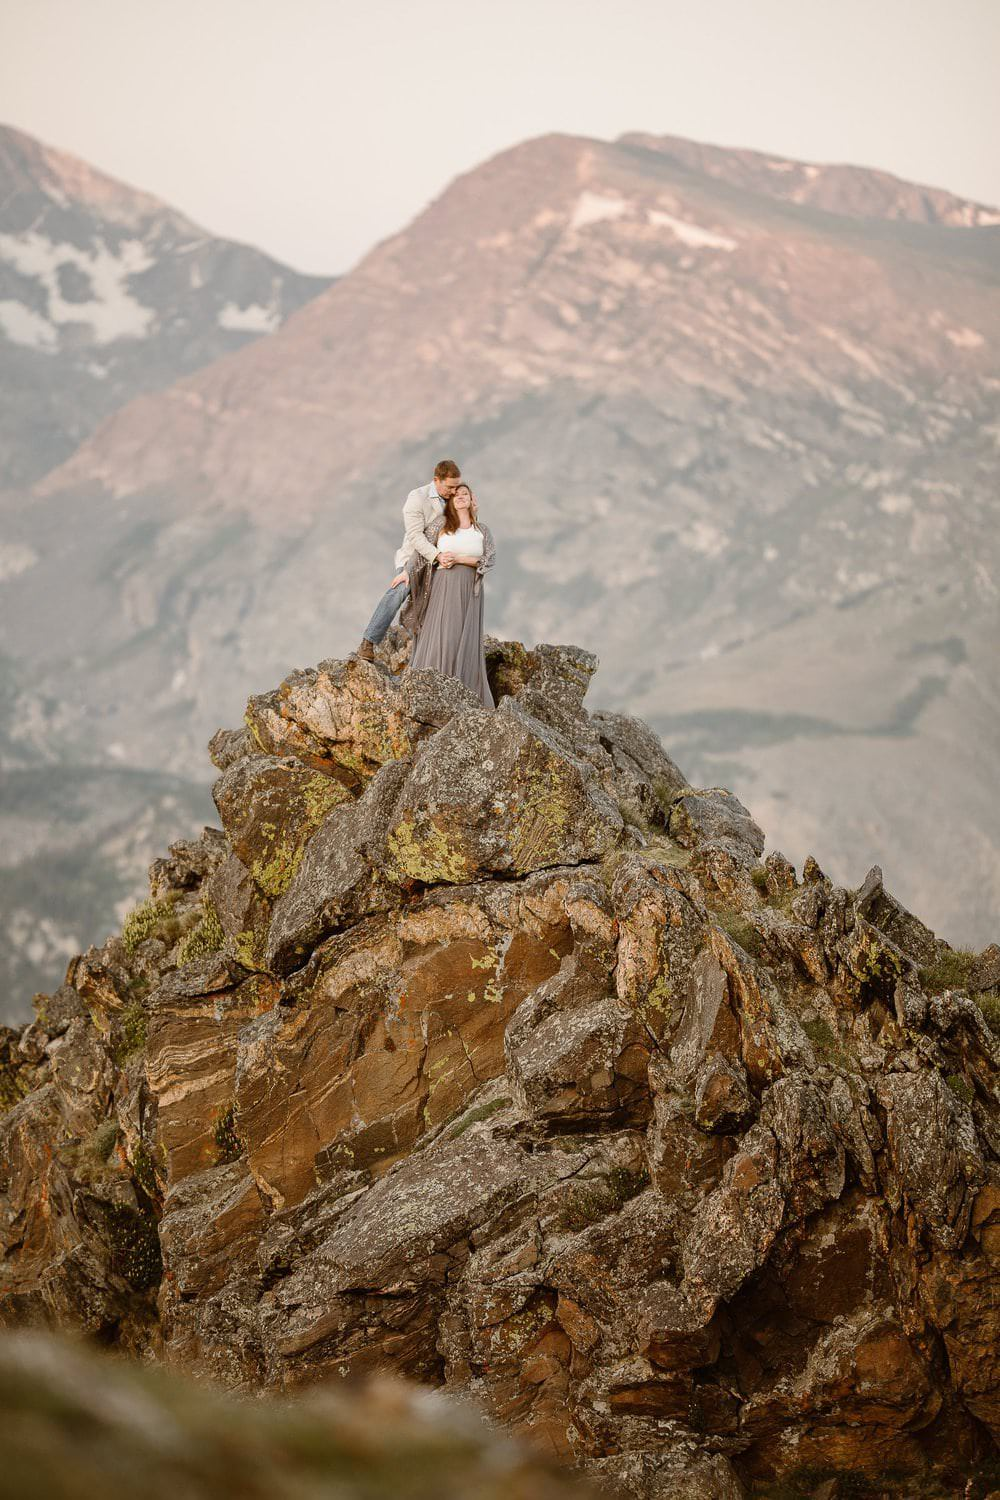 Estes Park Mountain Venue | Split Colorado Adventure Wedding Collection | Pet Friendly Colorado Wedding Venue | Colorado Wedding Photographer | Julianne + Darren Love Story